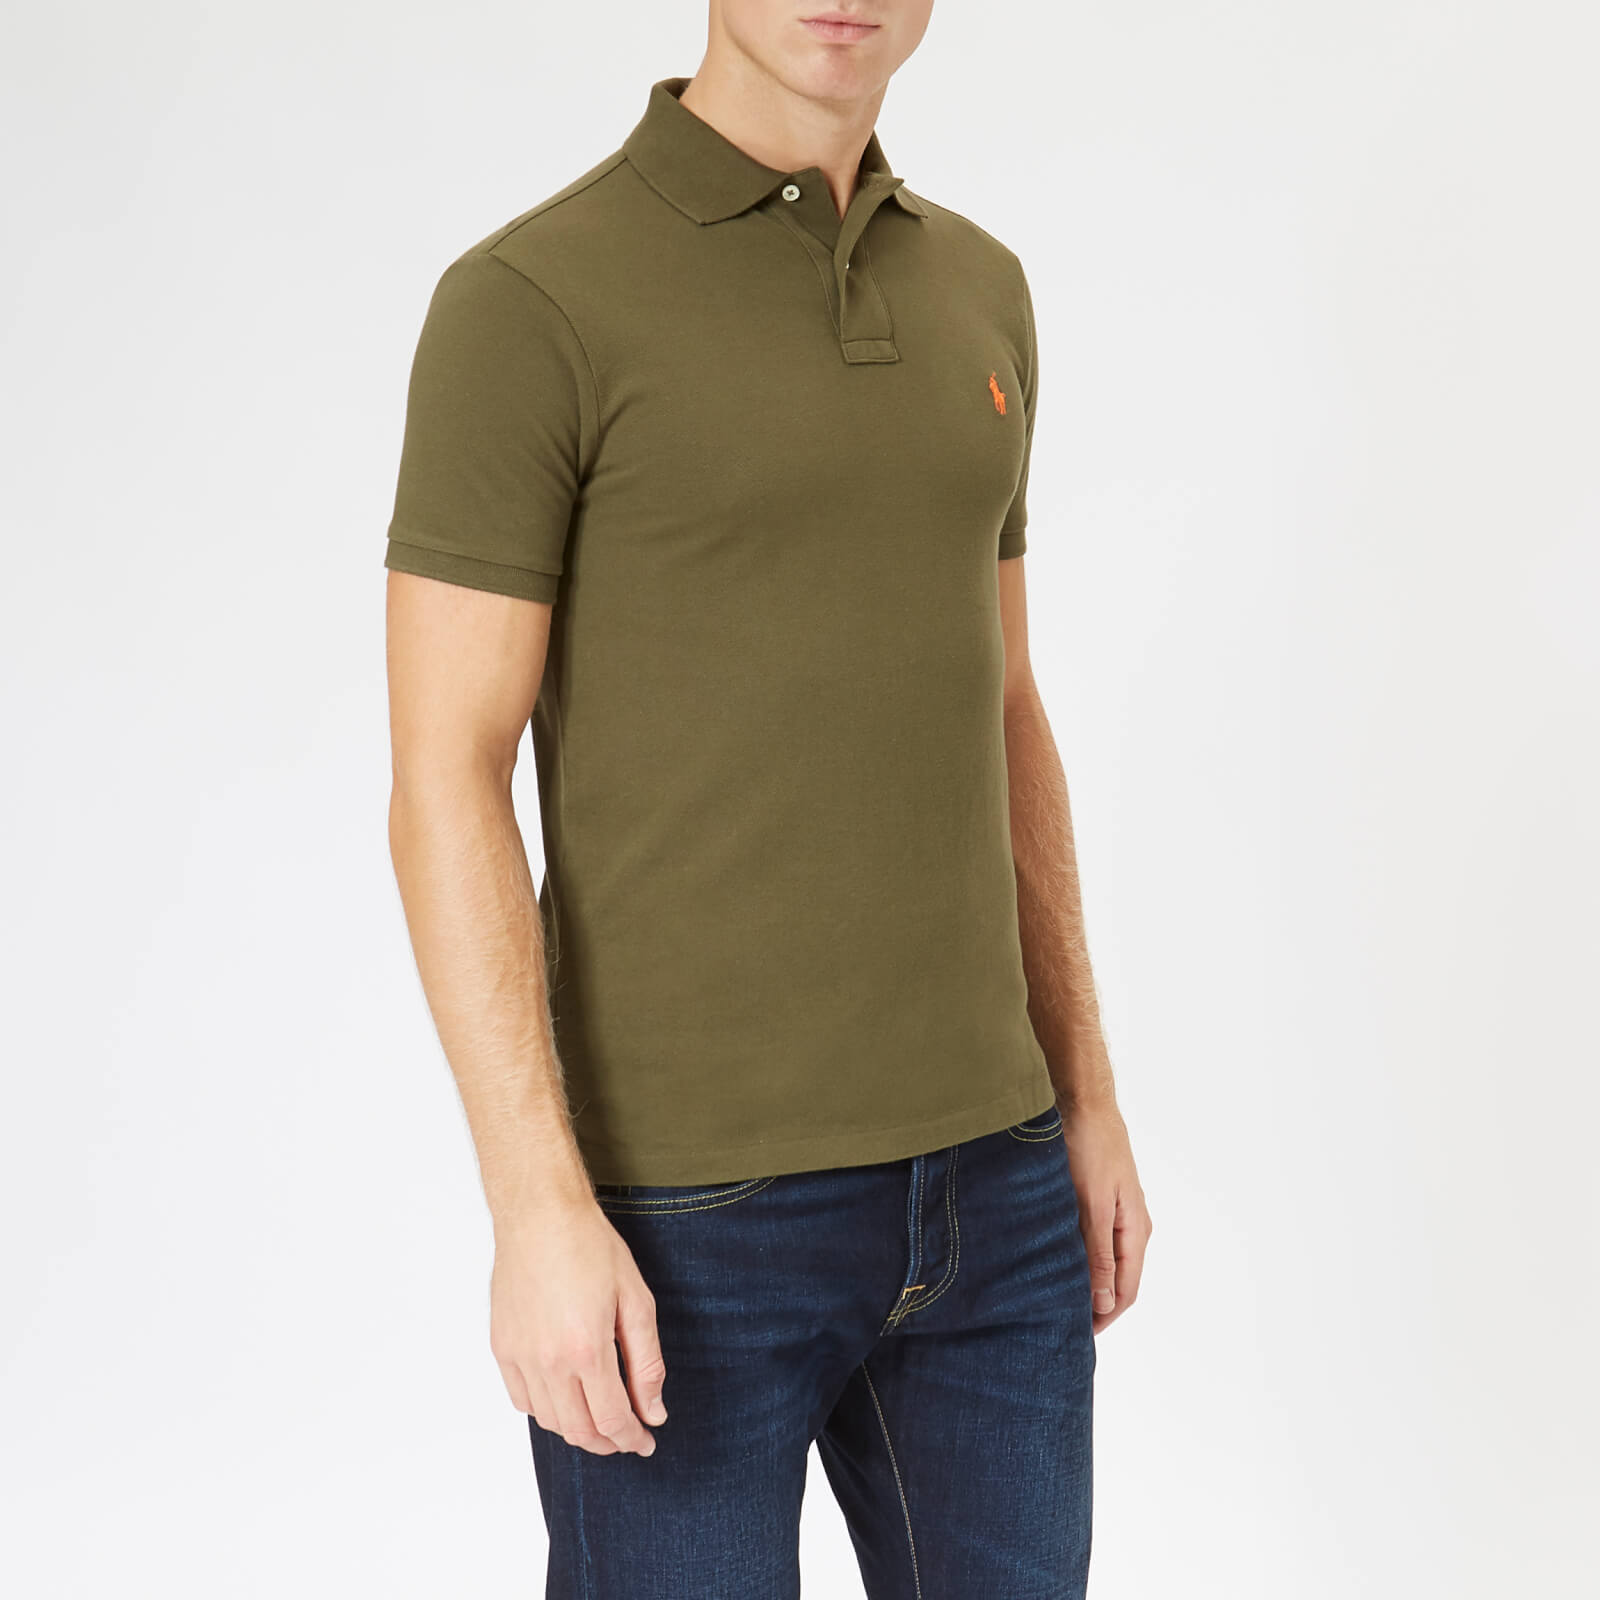 ddc06bc5a8861 Polo Ralph Lauren Men s Slim Fit Short Sleeve Polo Shirt - Expedition Olive  - Free UK Delivery over £50